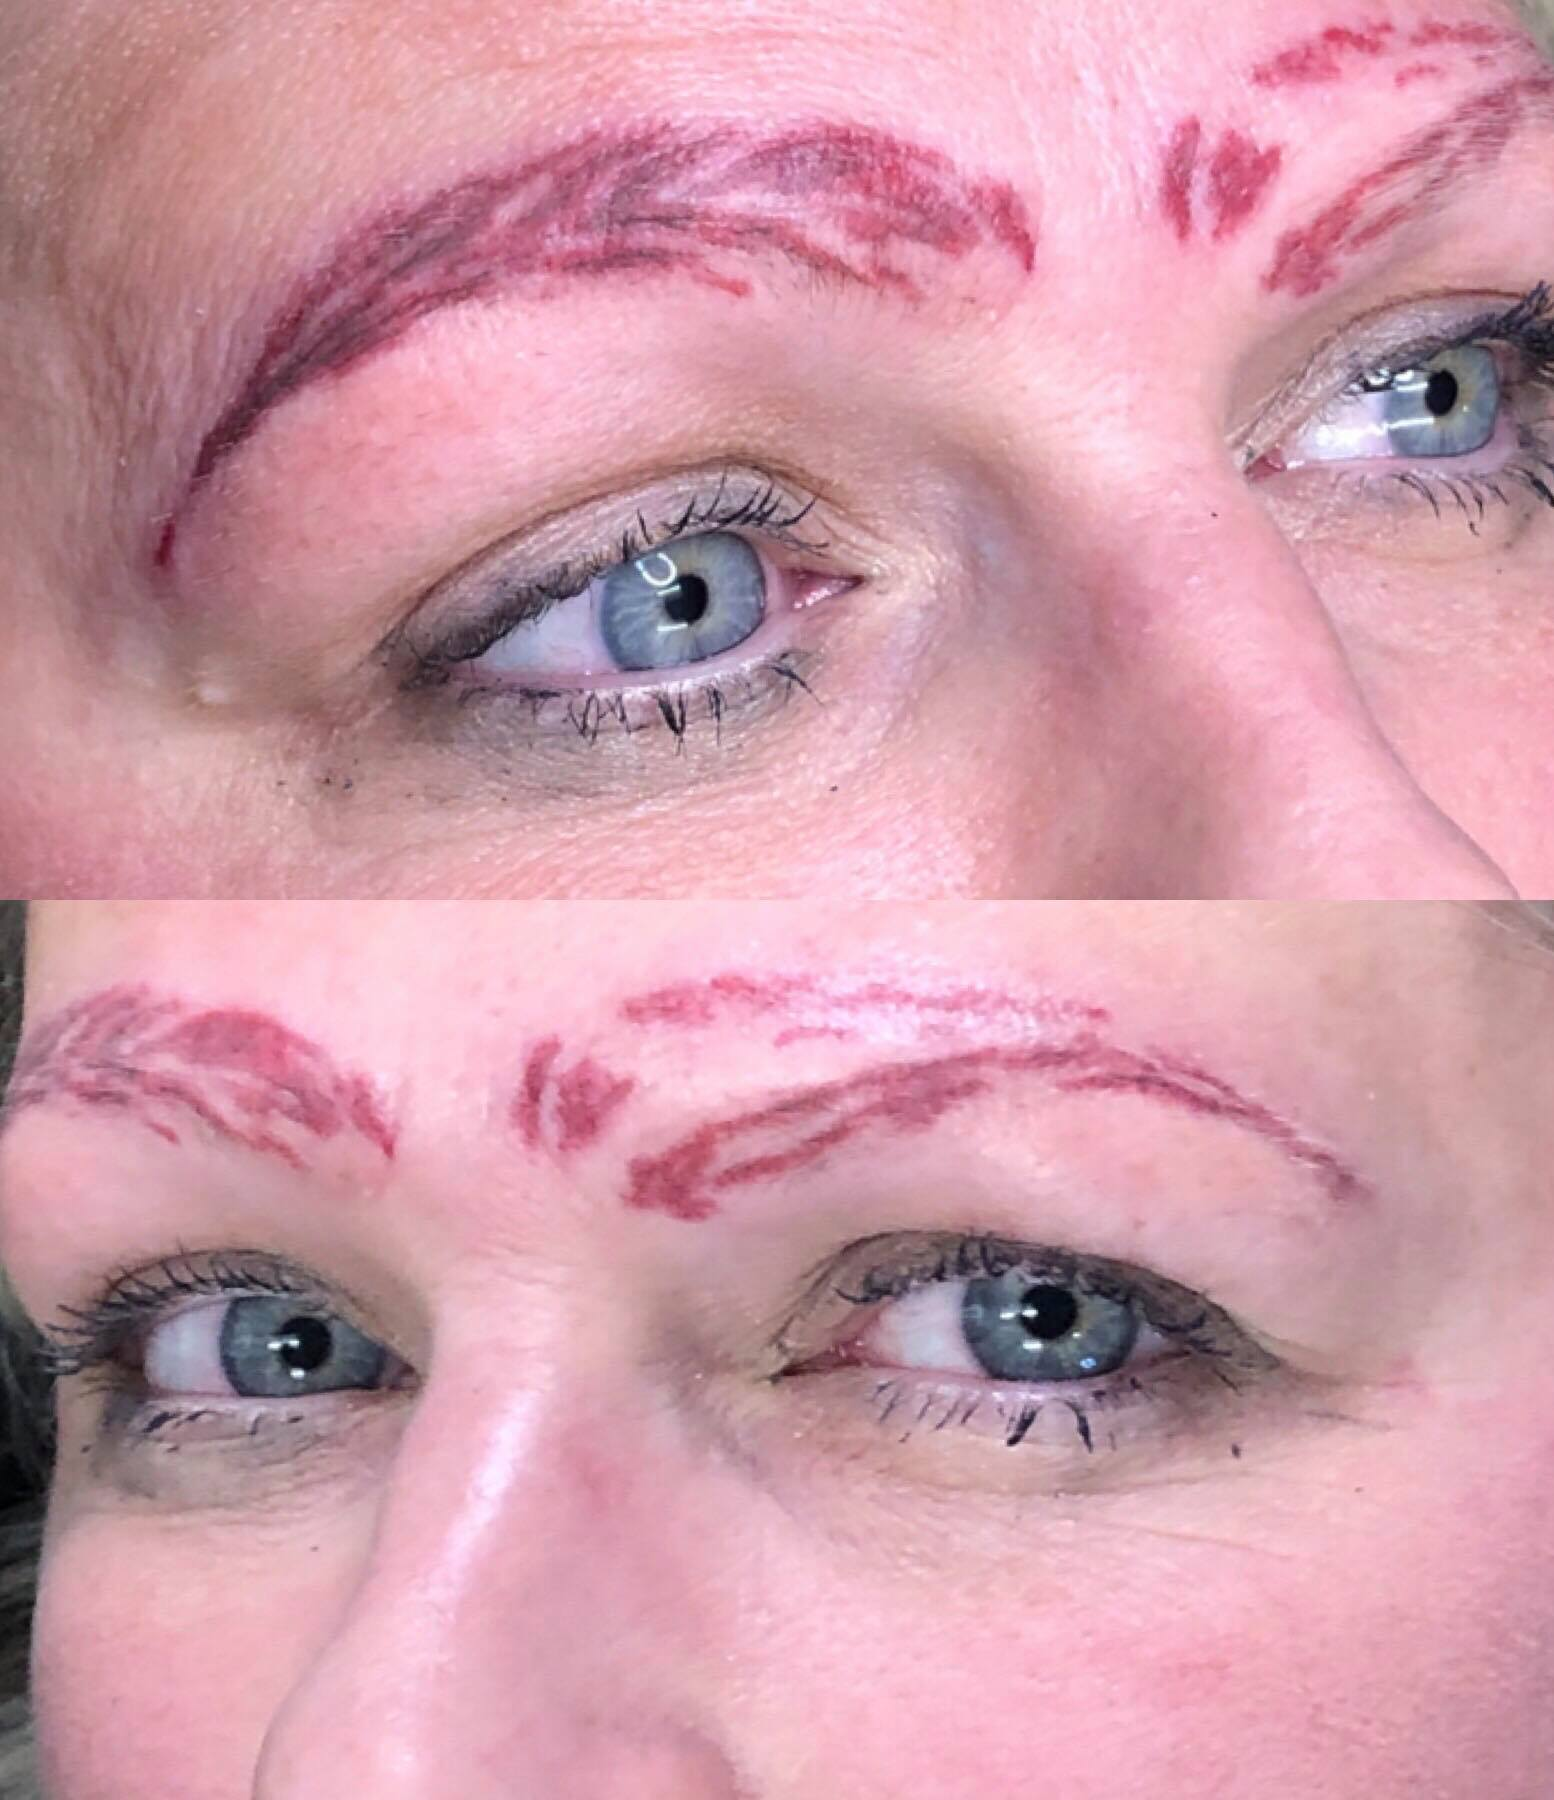 Bad Microblading MIcrobladed Eyebrows Saline Tattoo Removal Non Laser Tattoo Removal